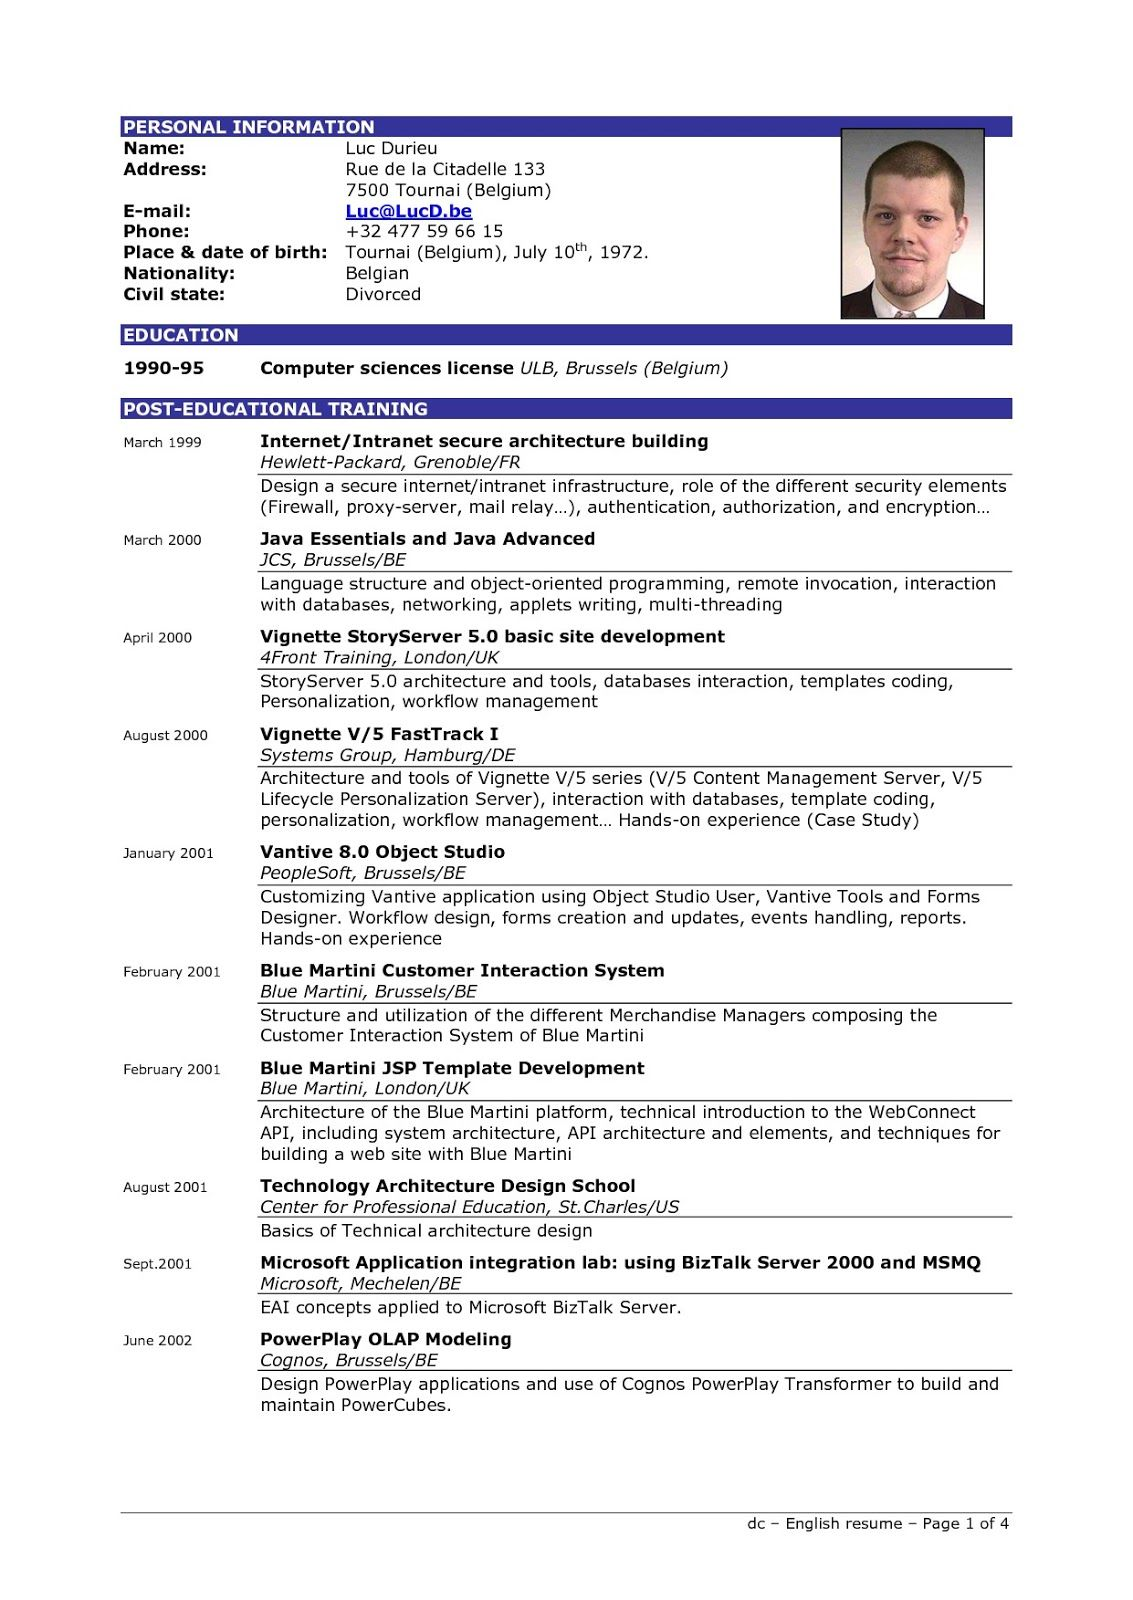 Free Resume Template Or Tips Glamorous Tips For Choosing A Free Resume Template  Resume Templates